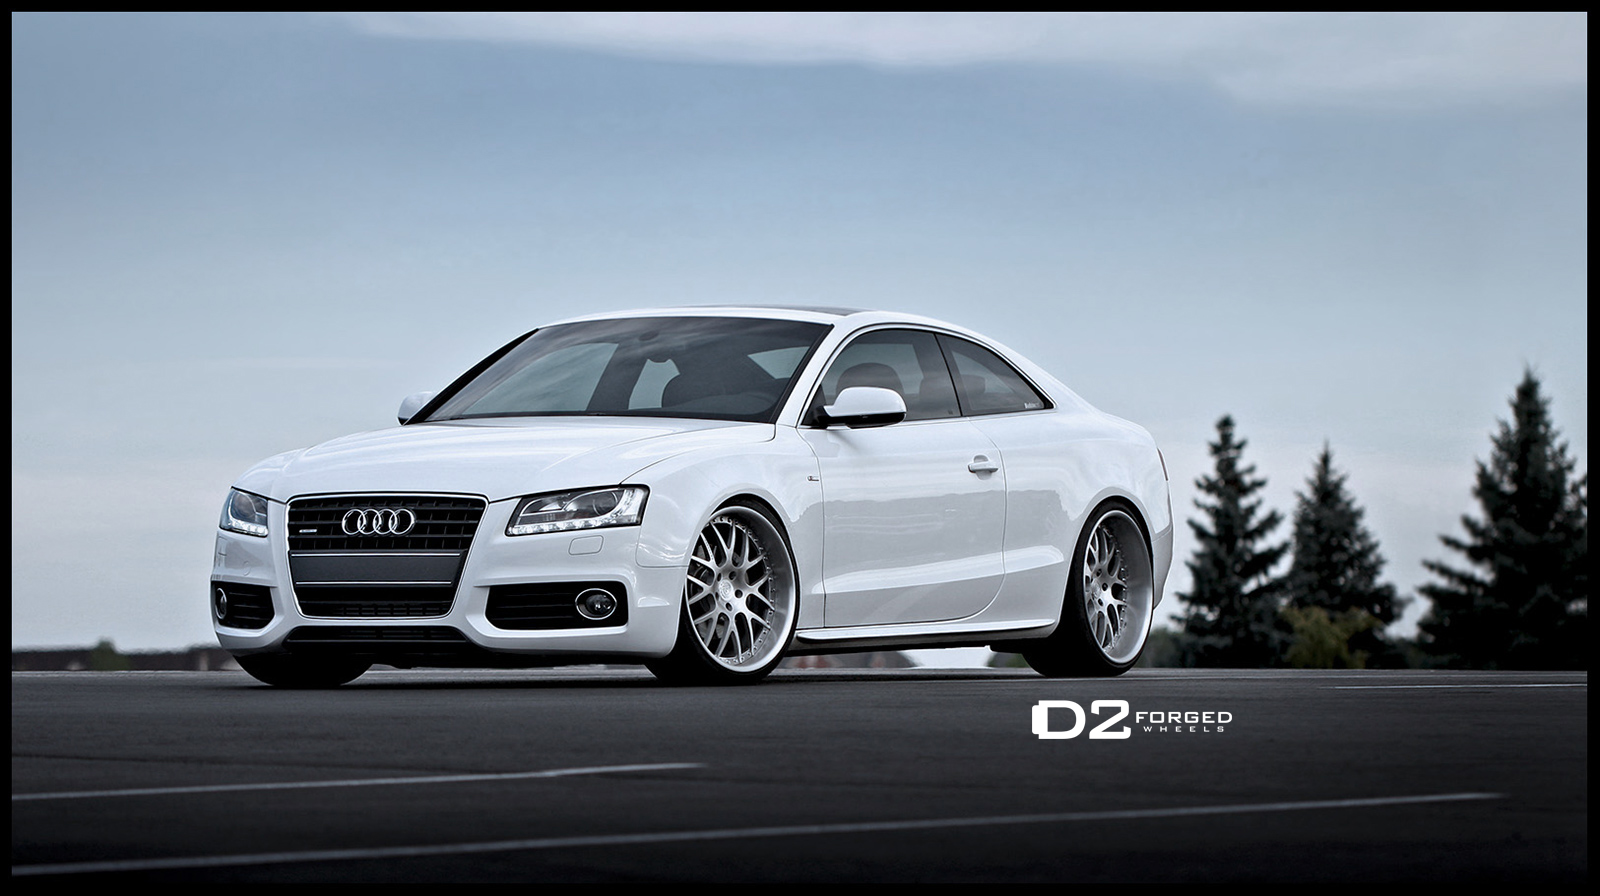 2012 audi a5 s line d2forged vs1 wheels 01 audi tuning mag. Black Bedroom Furniture Sets. Home Design Ideas